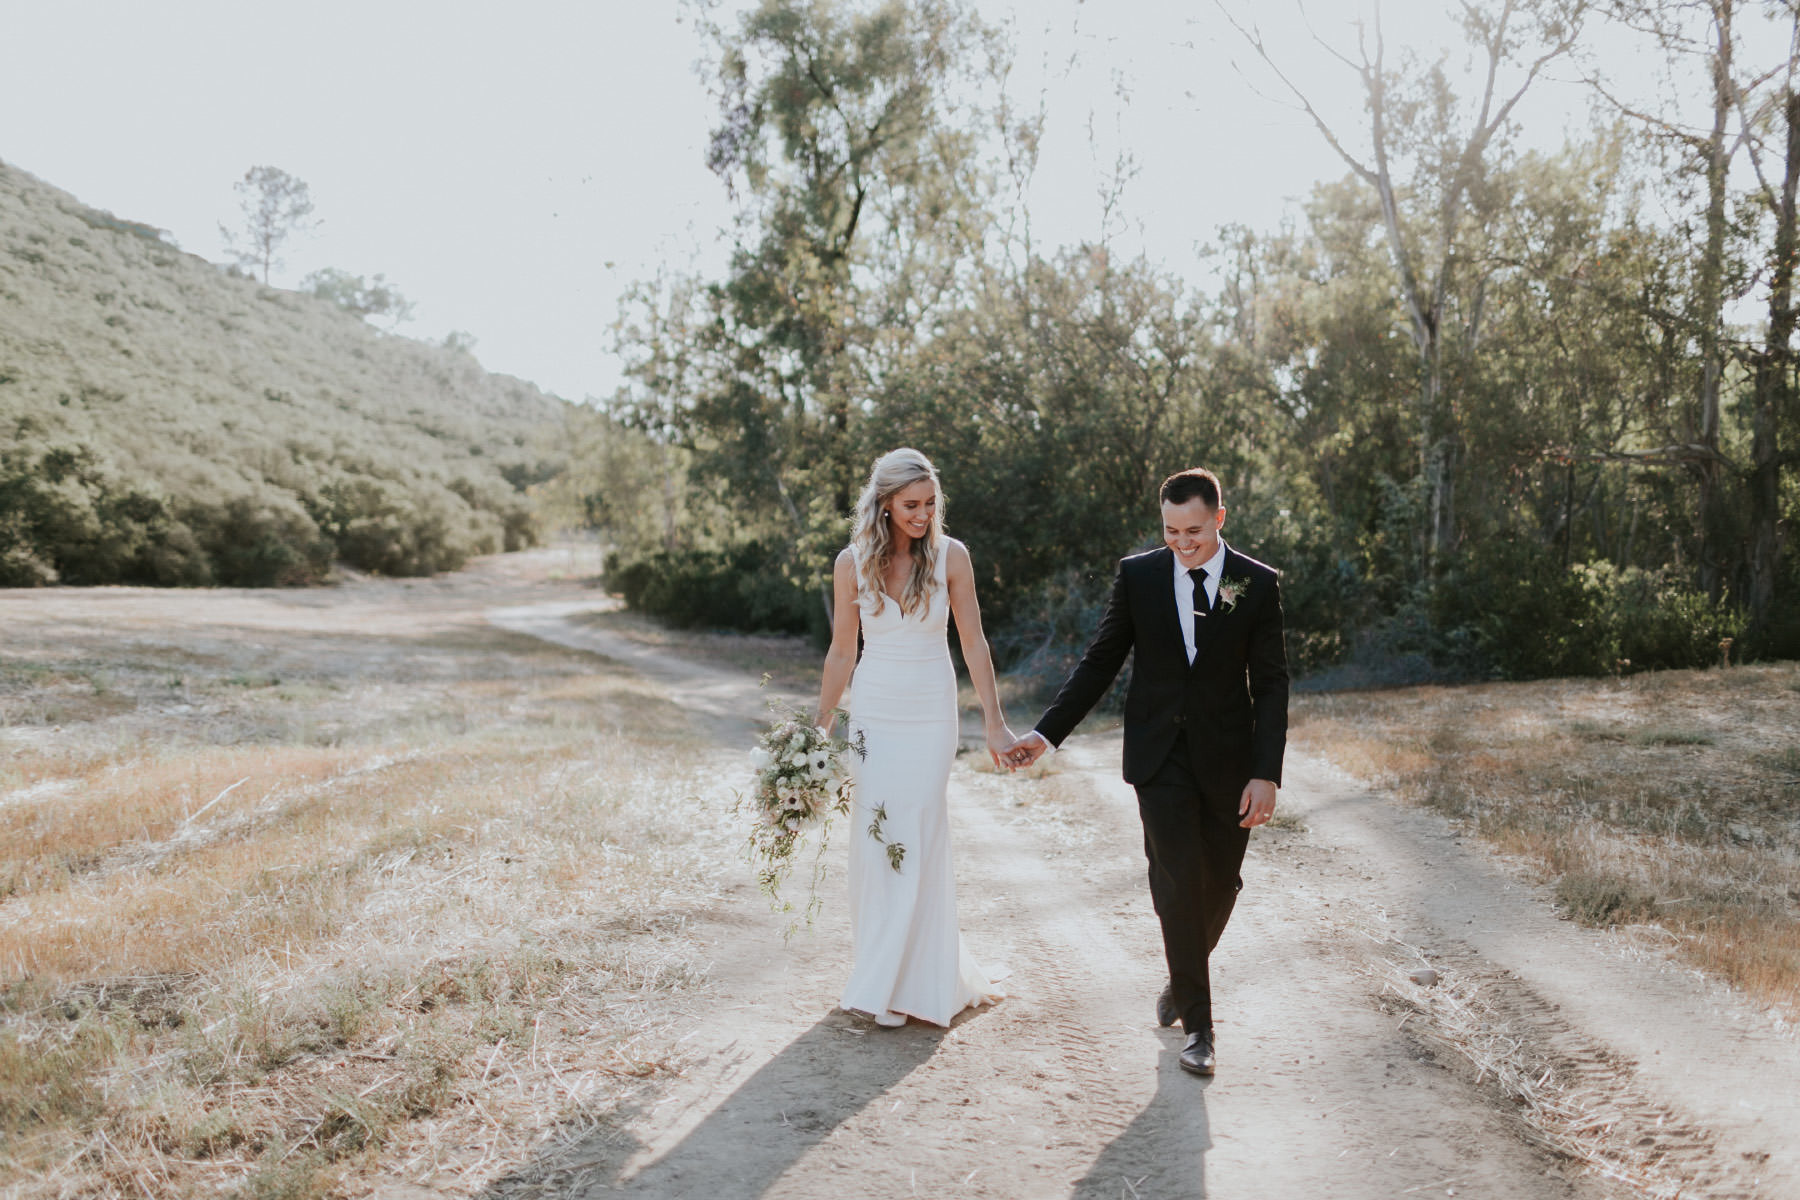 Bride and groom walking holding hands in field at Rancho Santa Fe estate